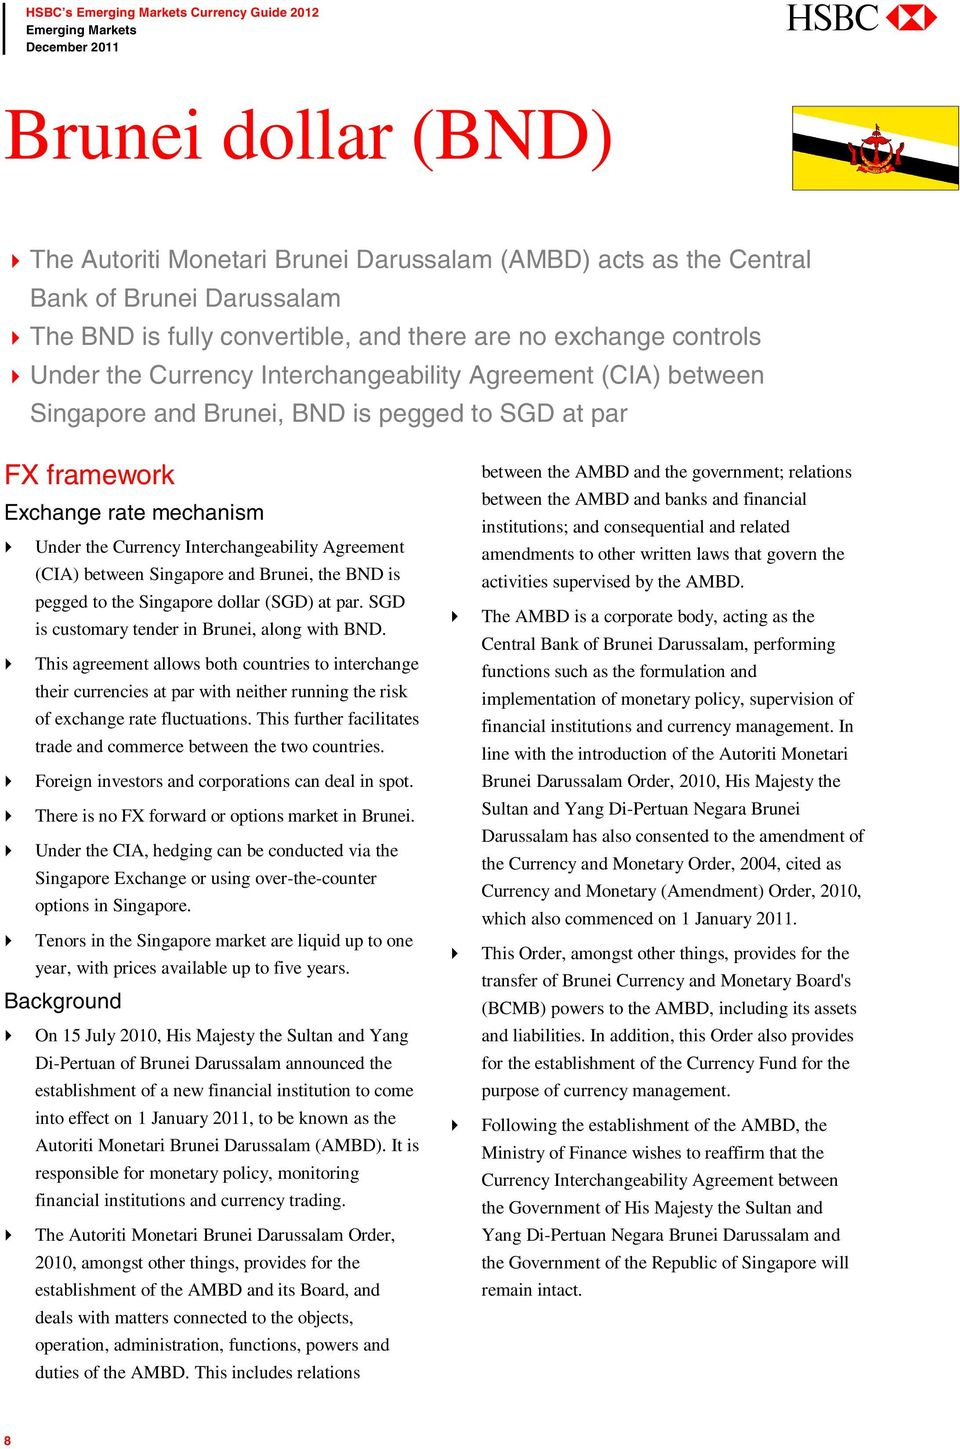 HSBC s Emerging Markets Currency Guide PDF